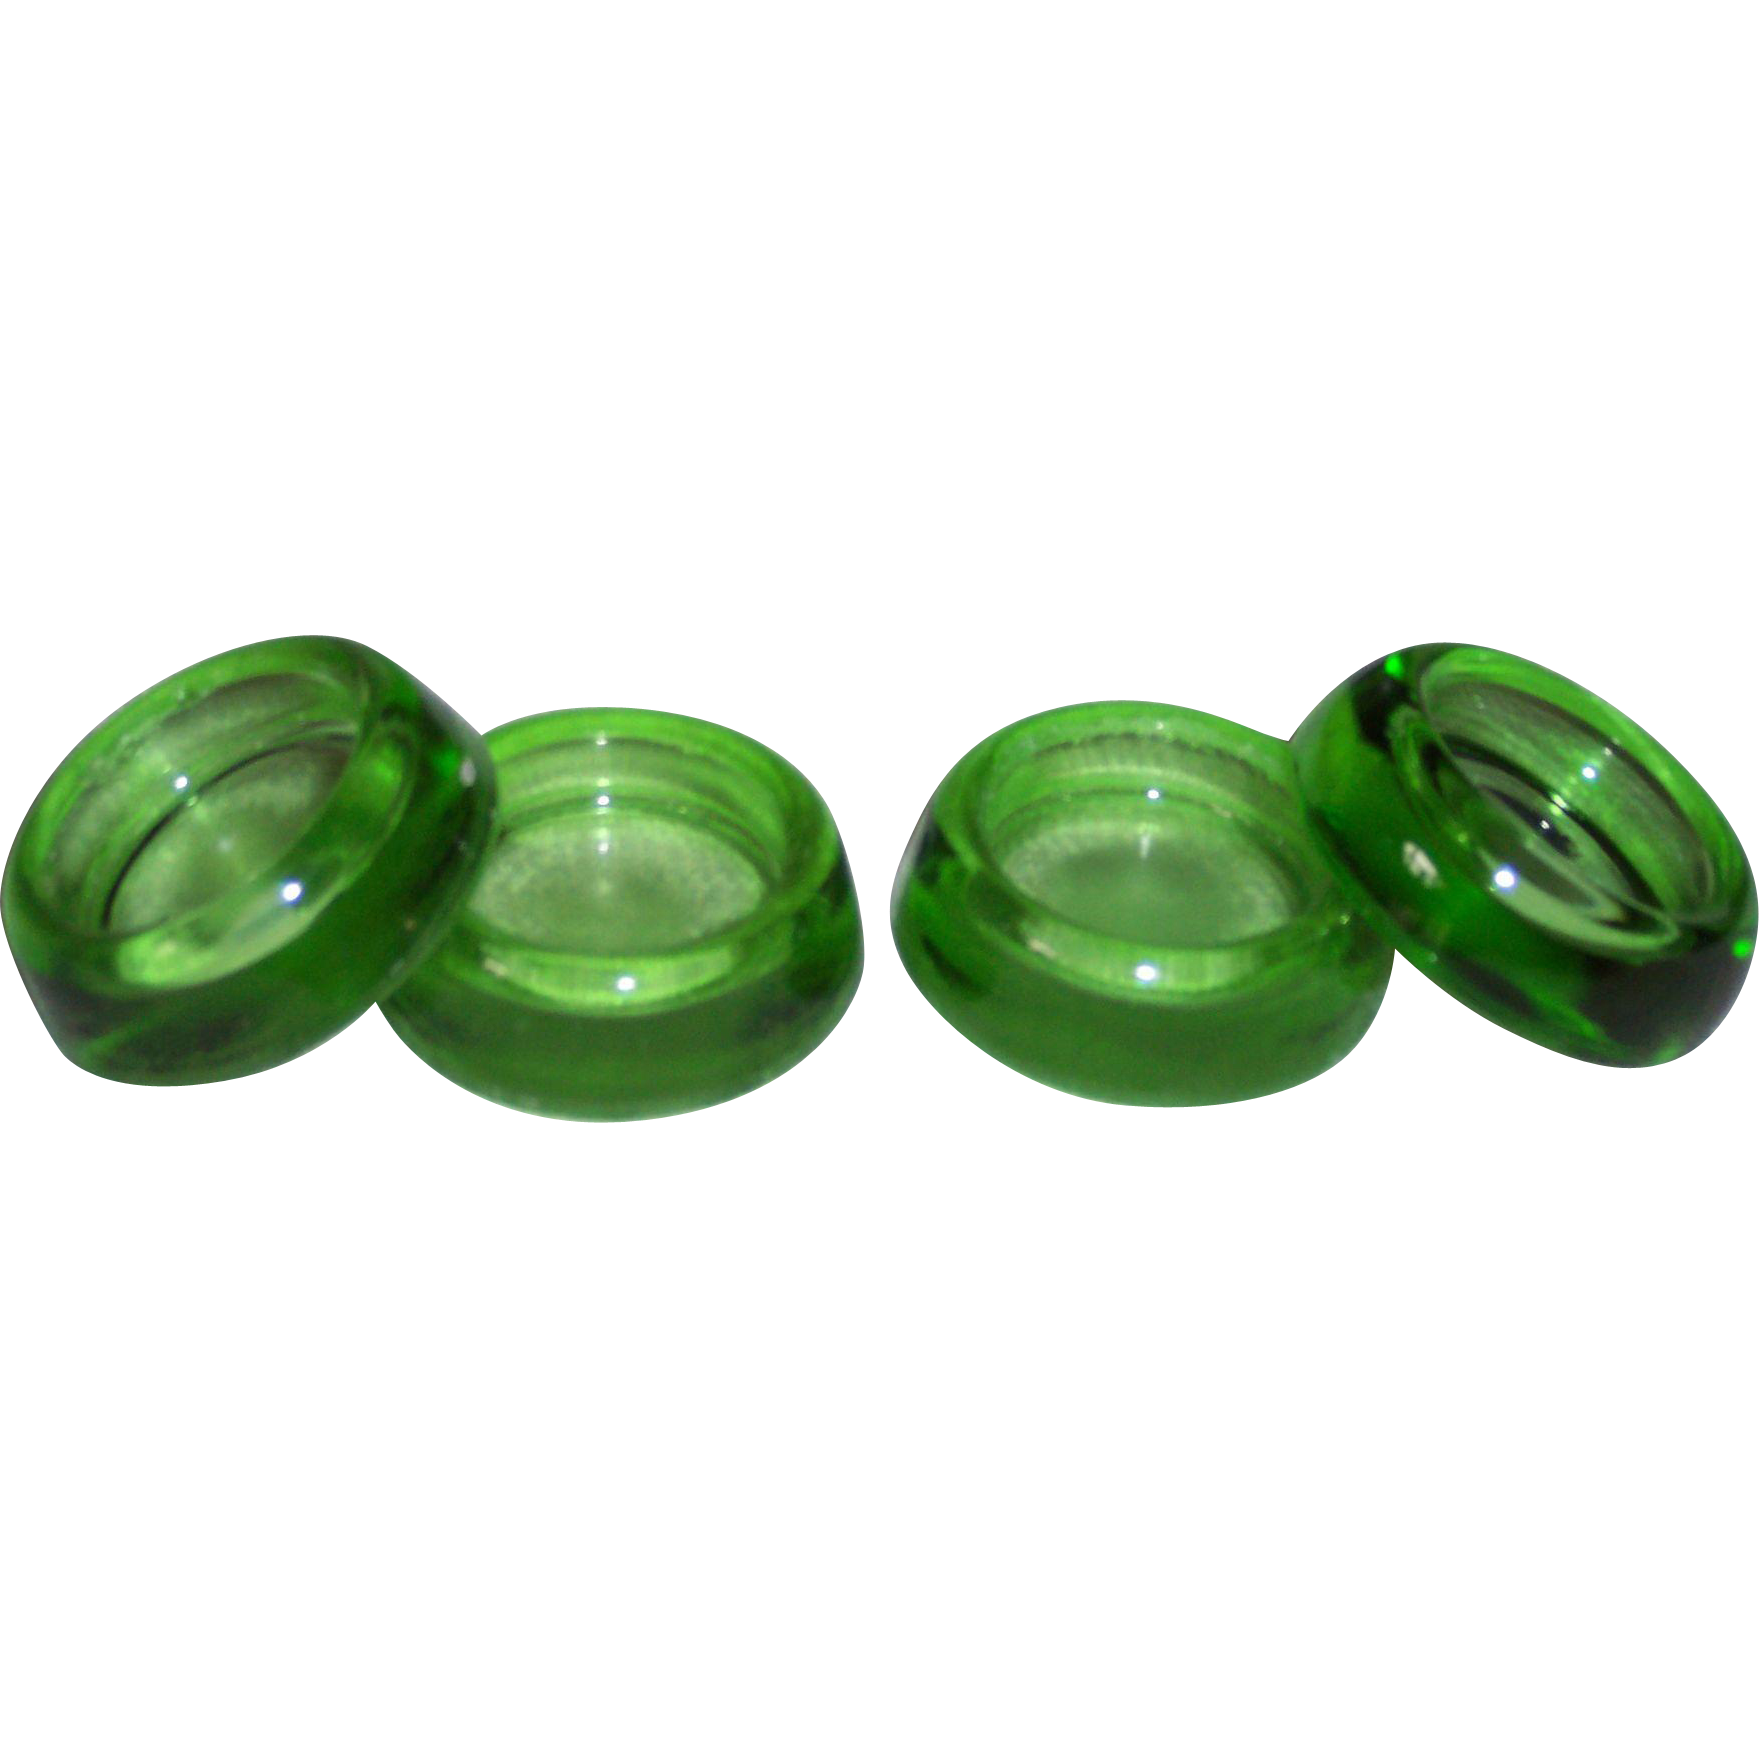 Vintage Green Glass Furniture Coasters from crows feet